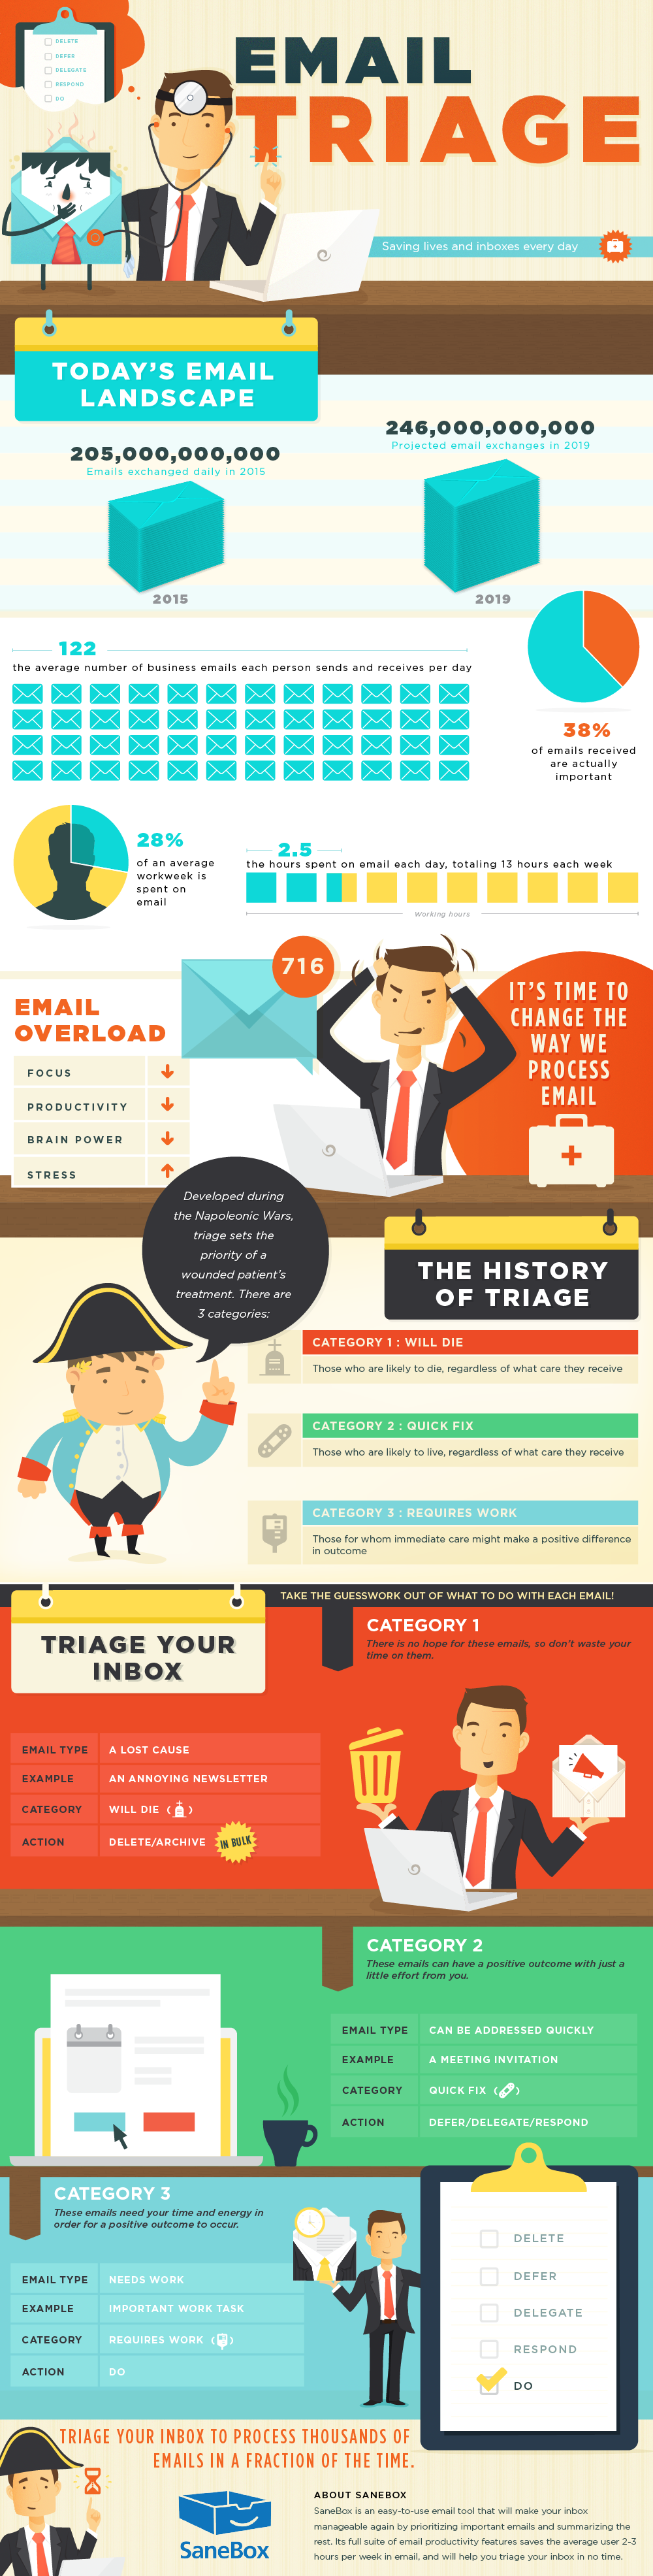 Email Triage: An Email Management Infographic by SaneBox